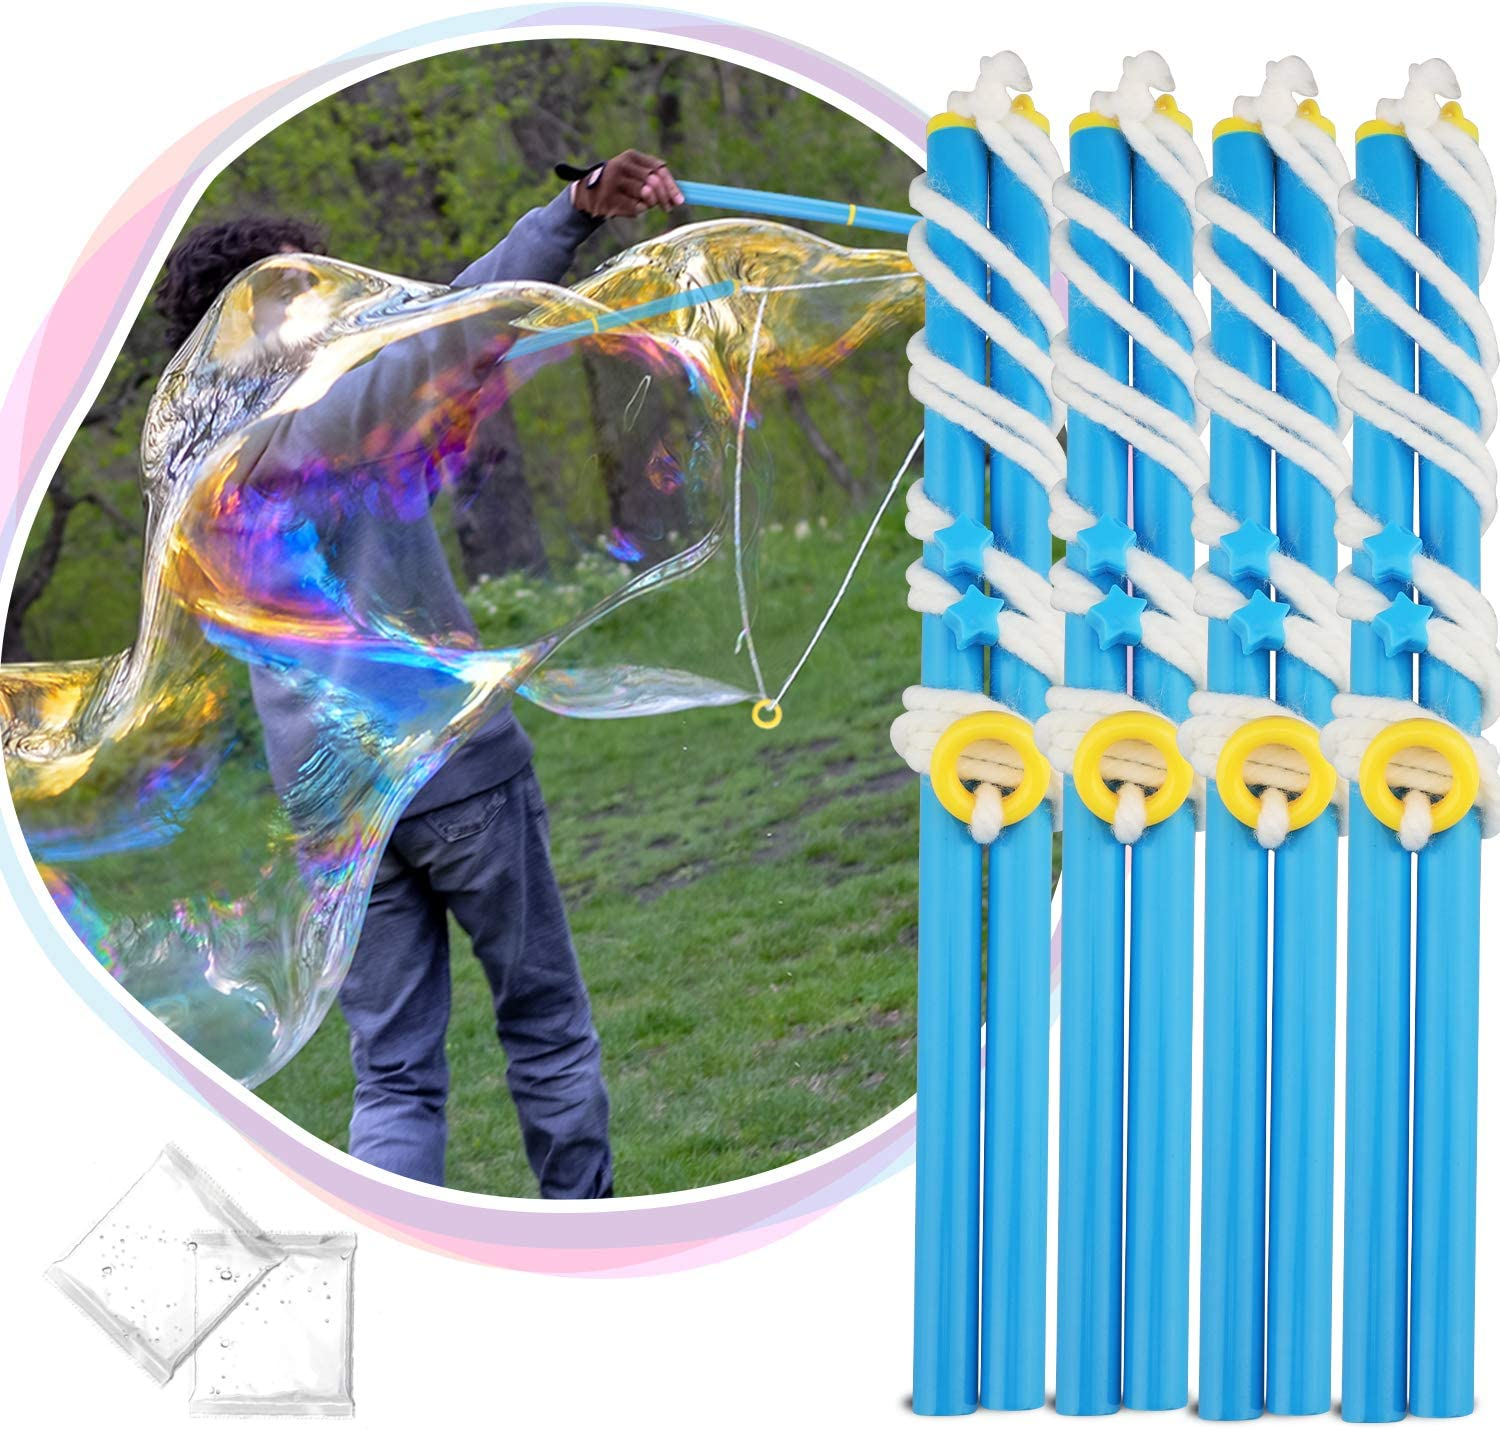 2 Pieces Giant Bubble Wands Rope Kit Outdoor Activities Making Long Huge Bubbles